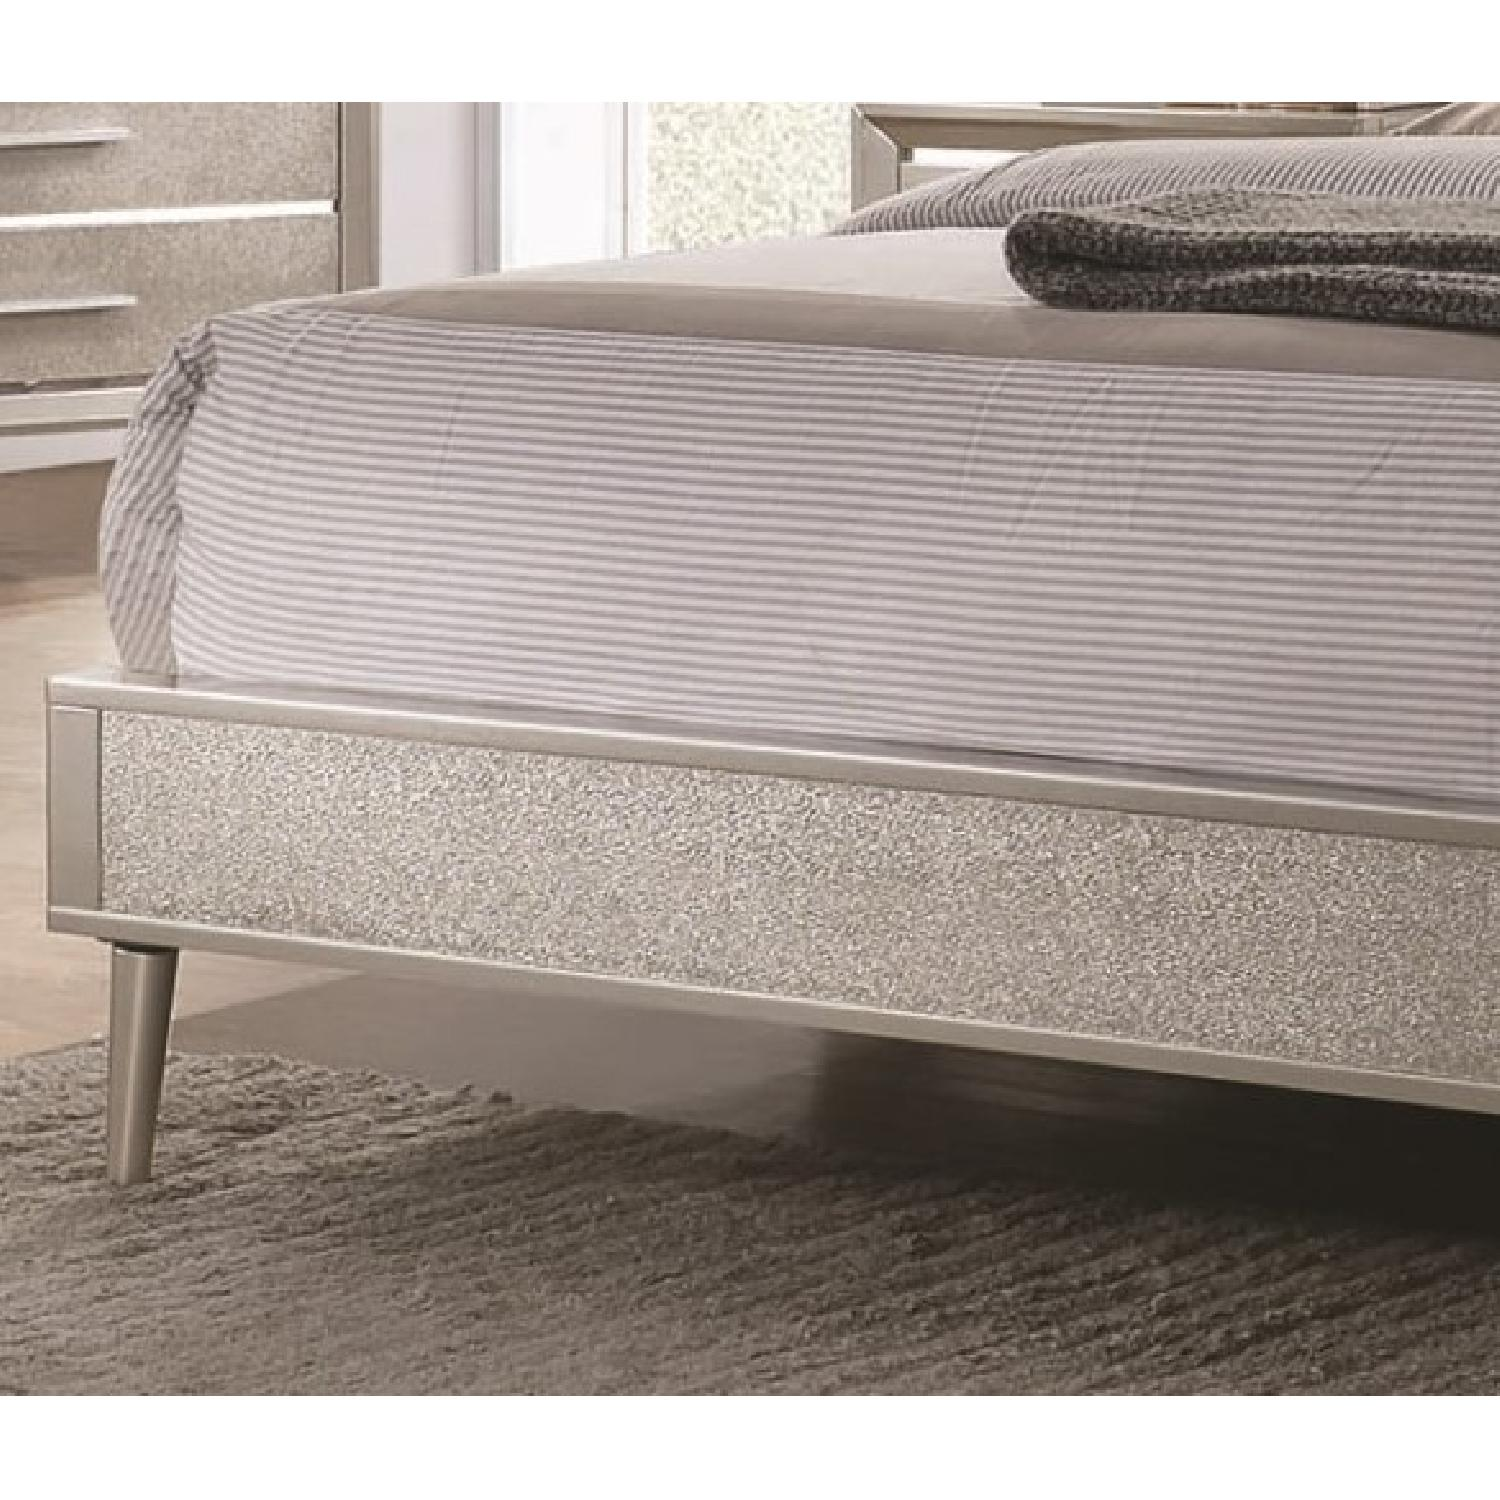 Mid Century Style King Bed in Metallic Silver Glitter Design - image-15